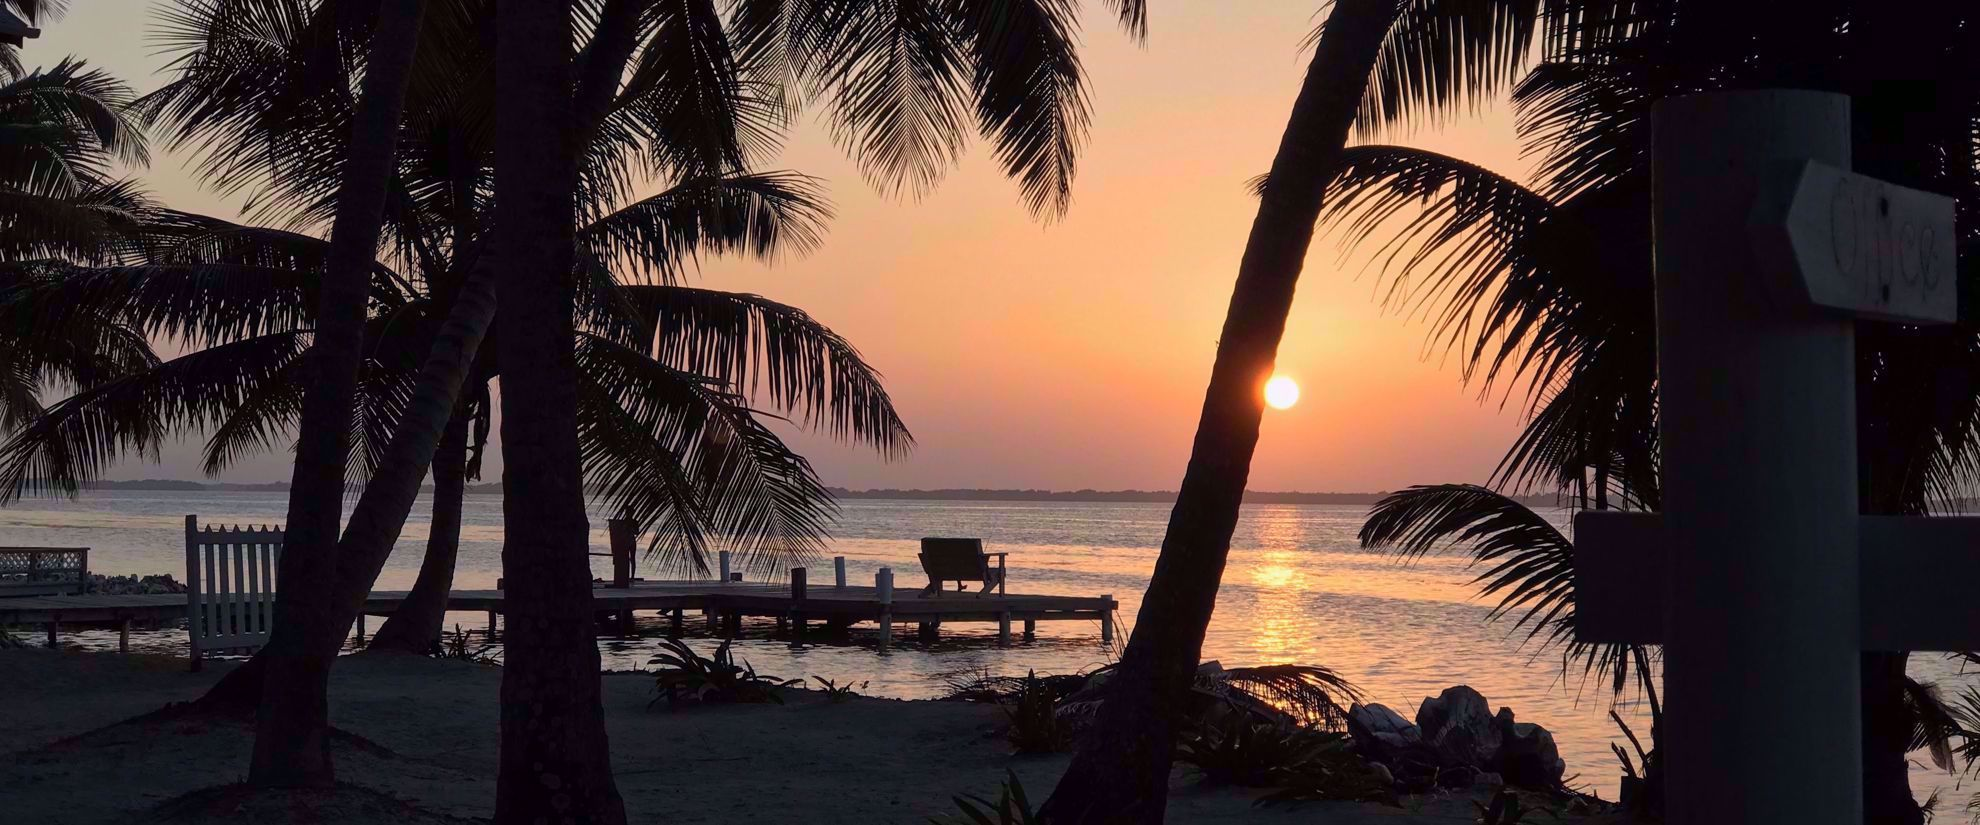 golden sunset with palm trees belize